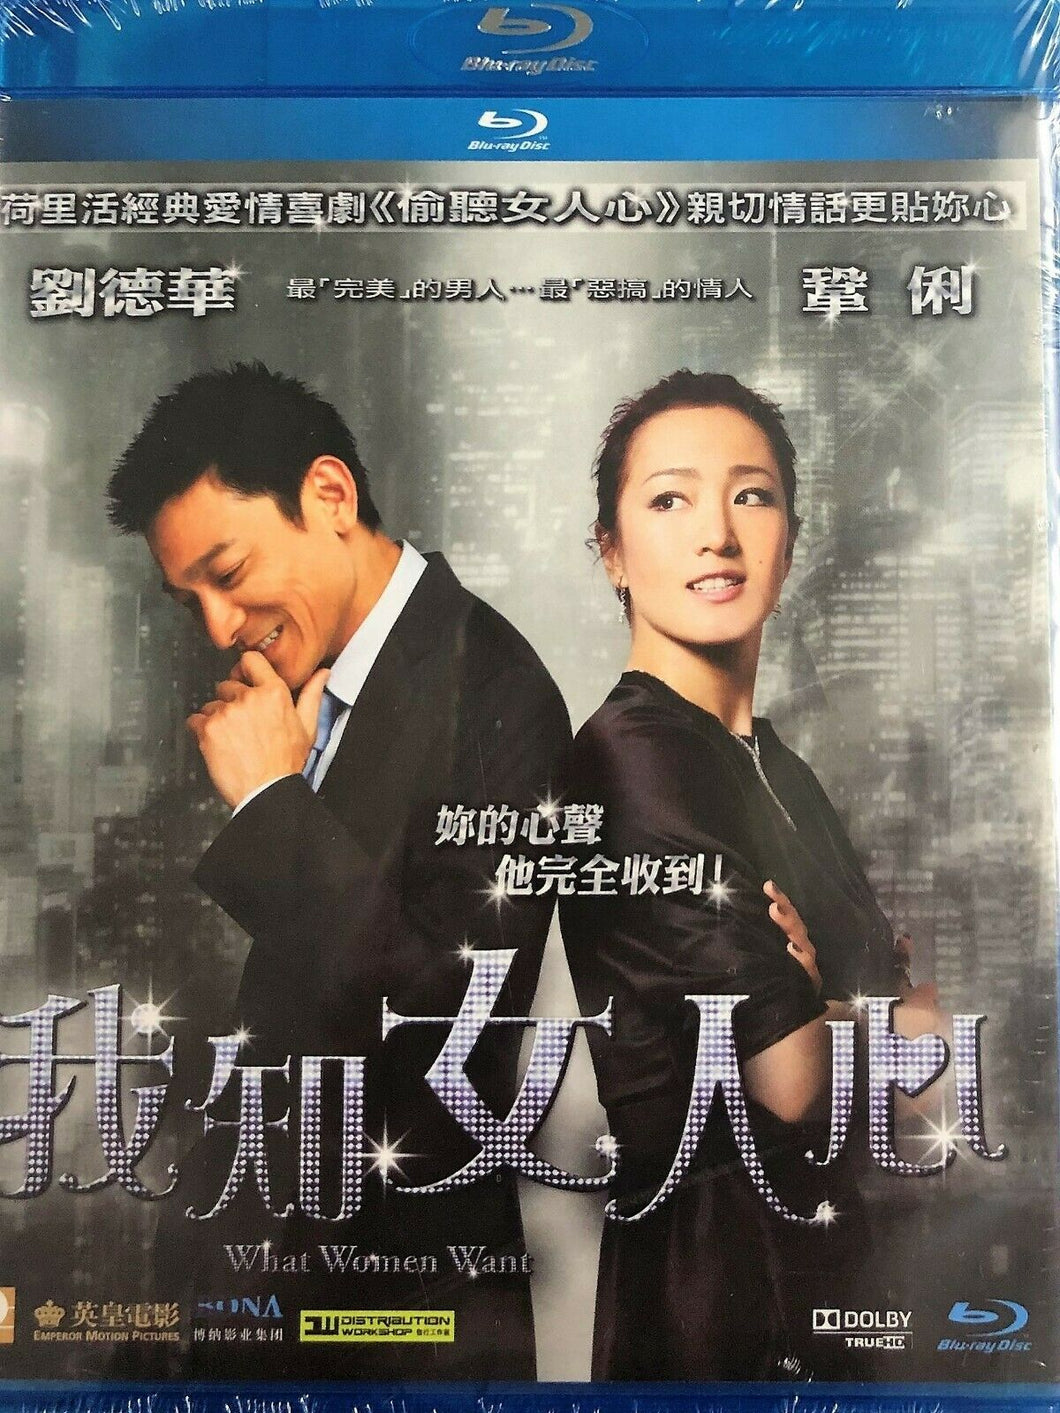 What Women Want 2010 (Hong Kong Movie) BLU-RAY with English Subtitles (Region A) 我知女人心